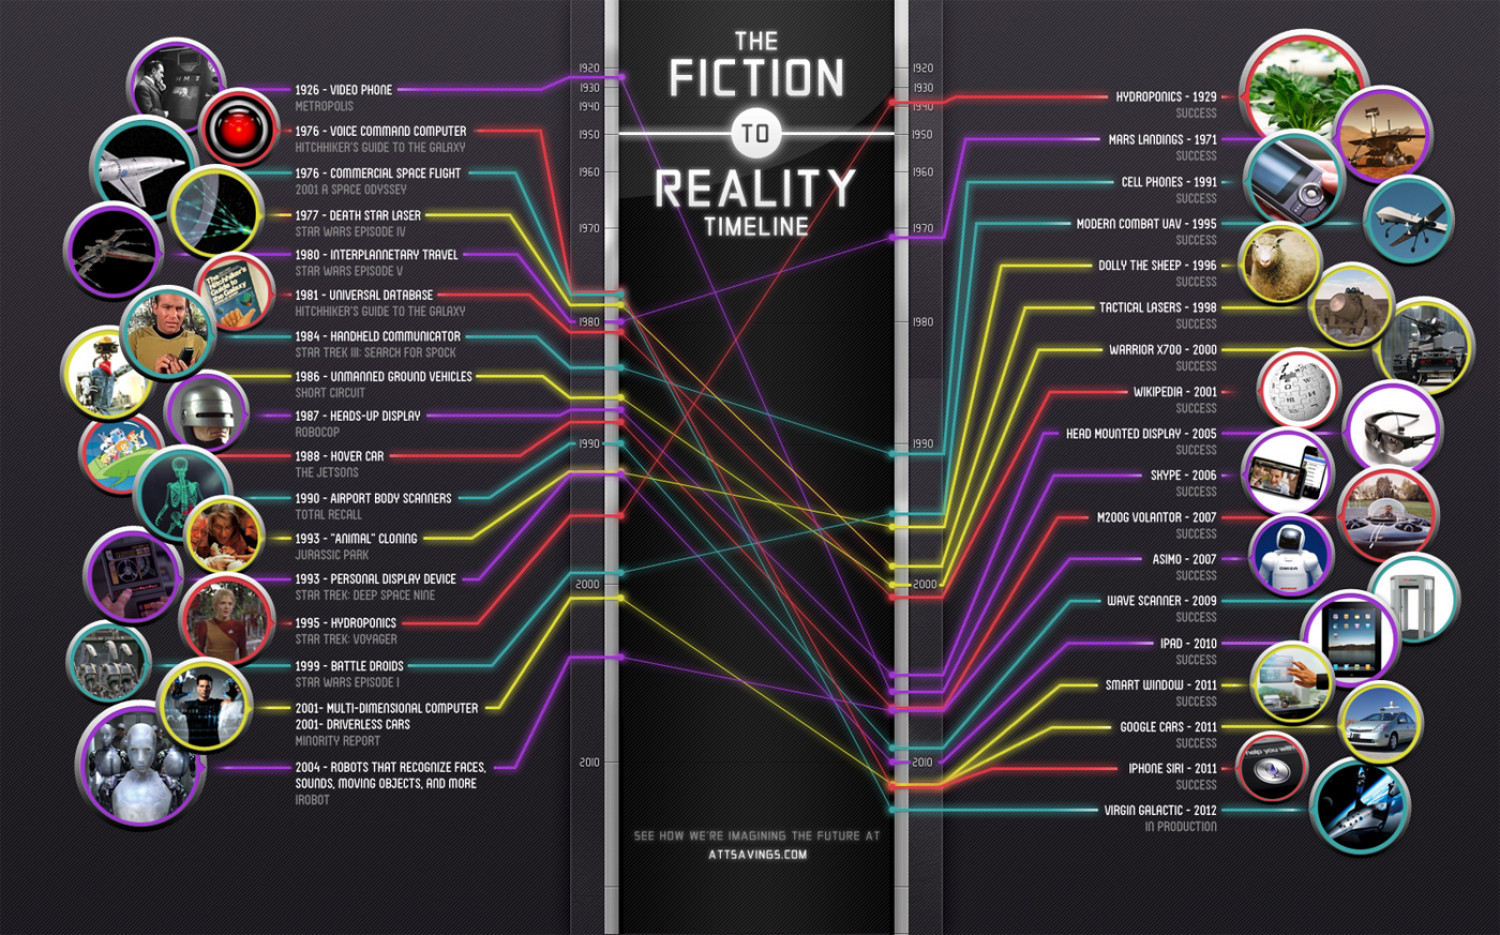 The Fiction to Reality Timeline Infographic